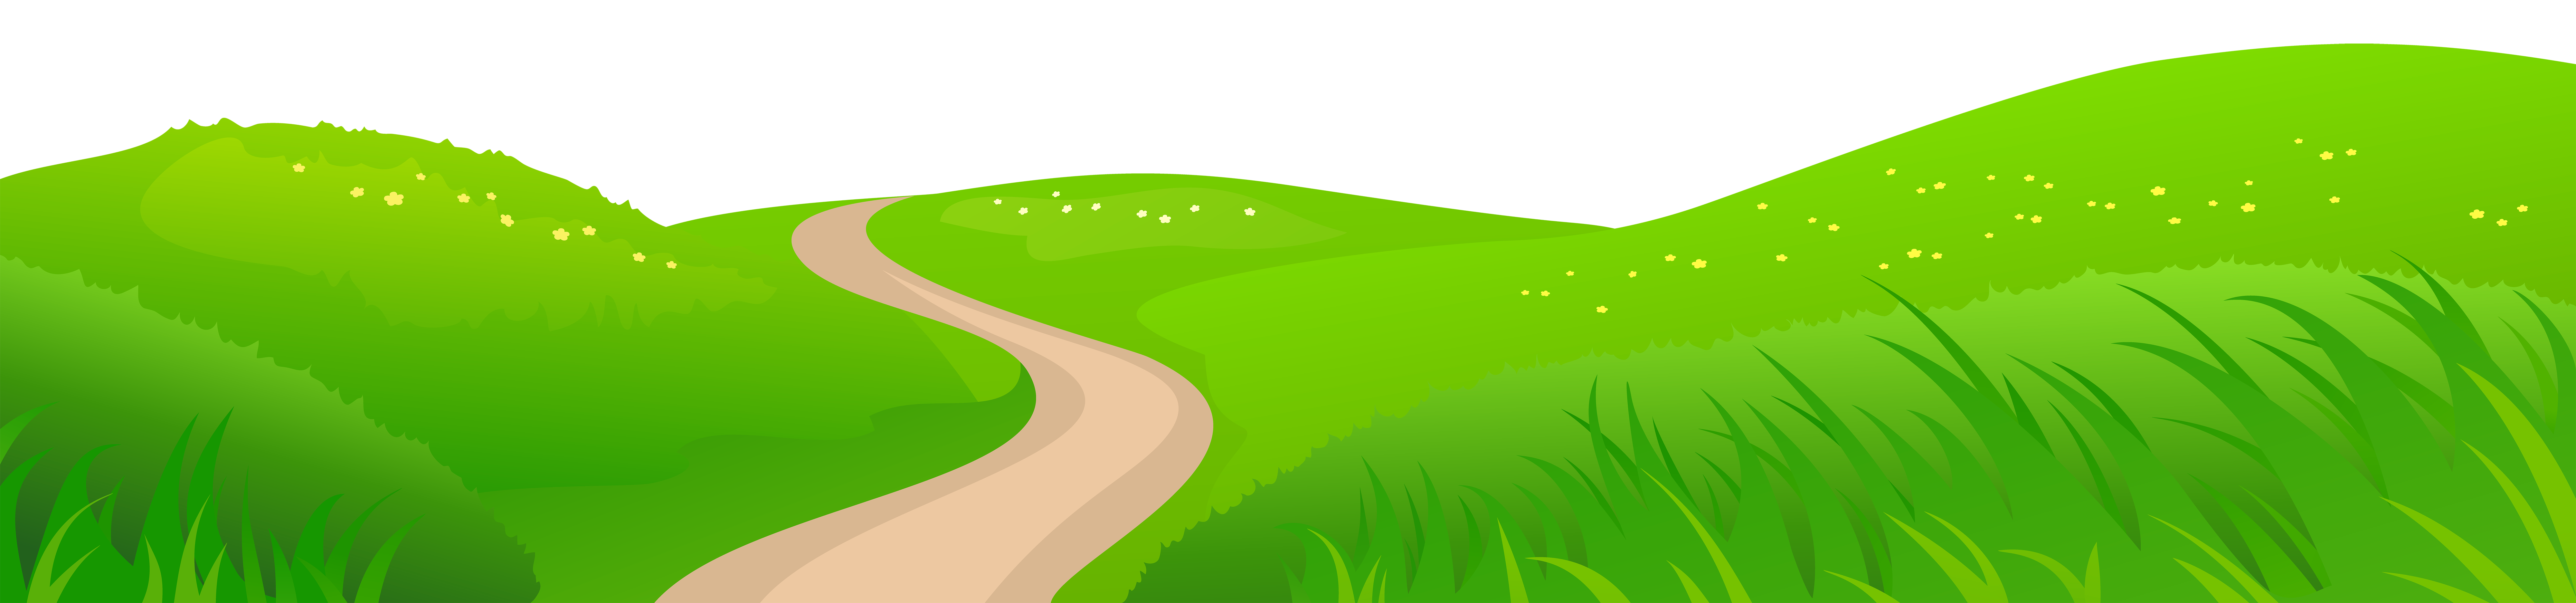 black and white download Yard clipart grassy path. Grass meadow transparent png